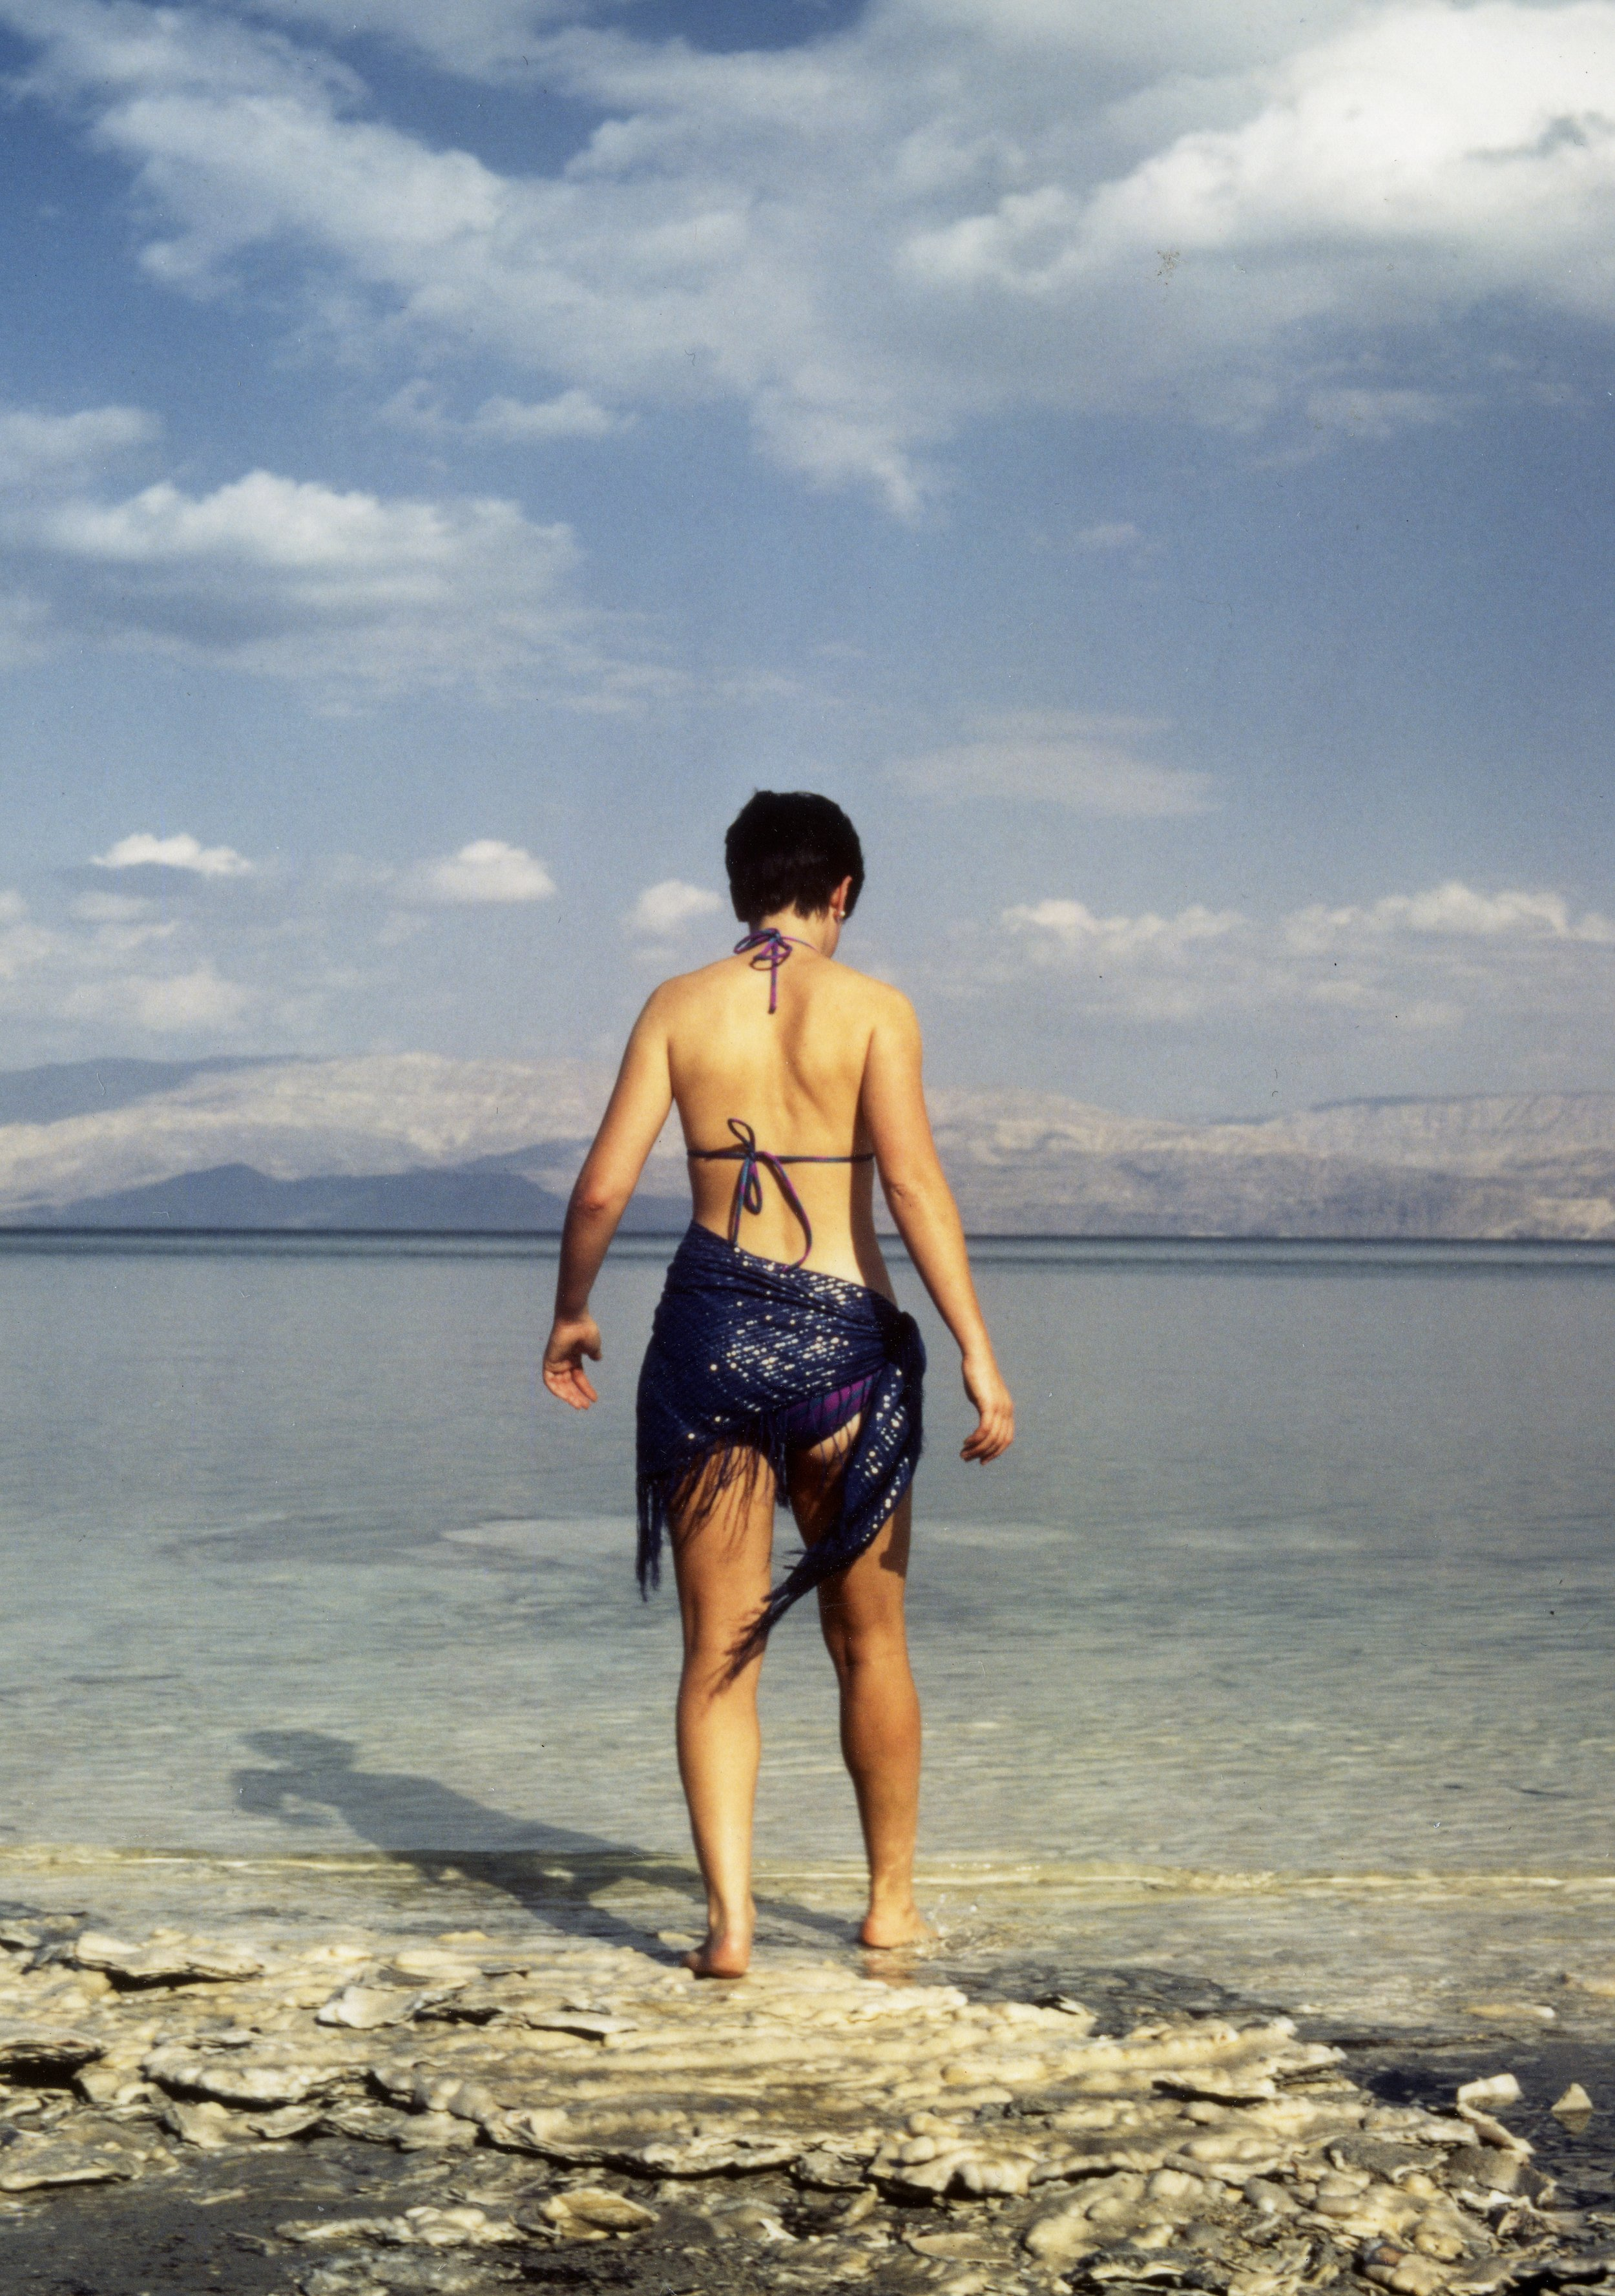 Age 26 at the Dead Sea, Israel.